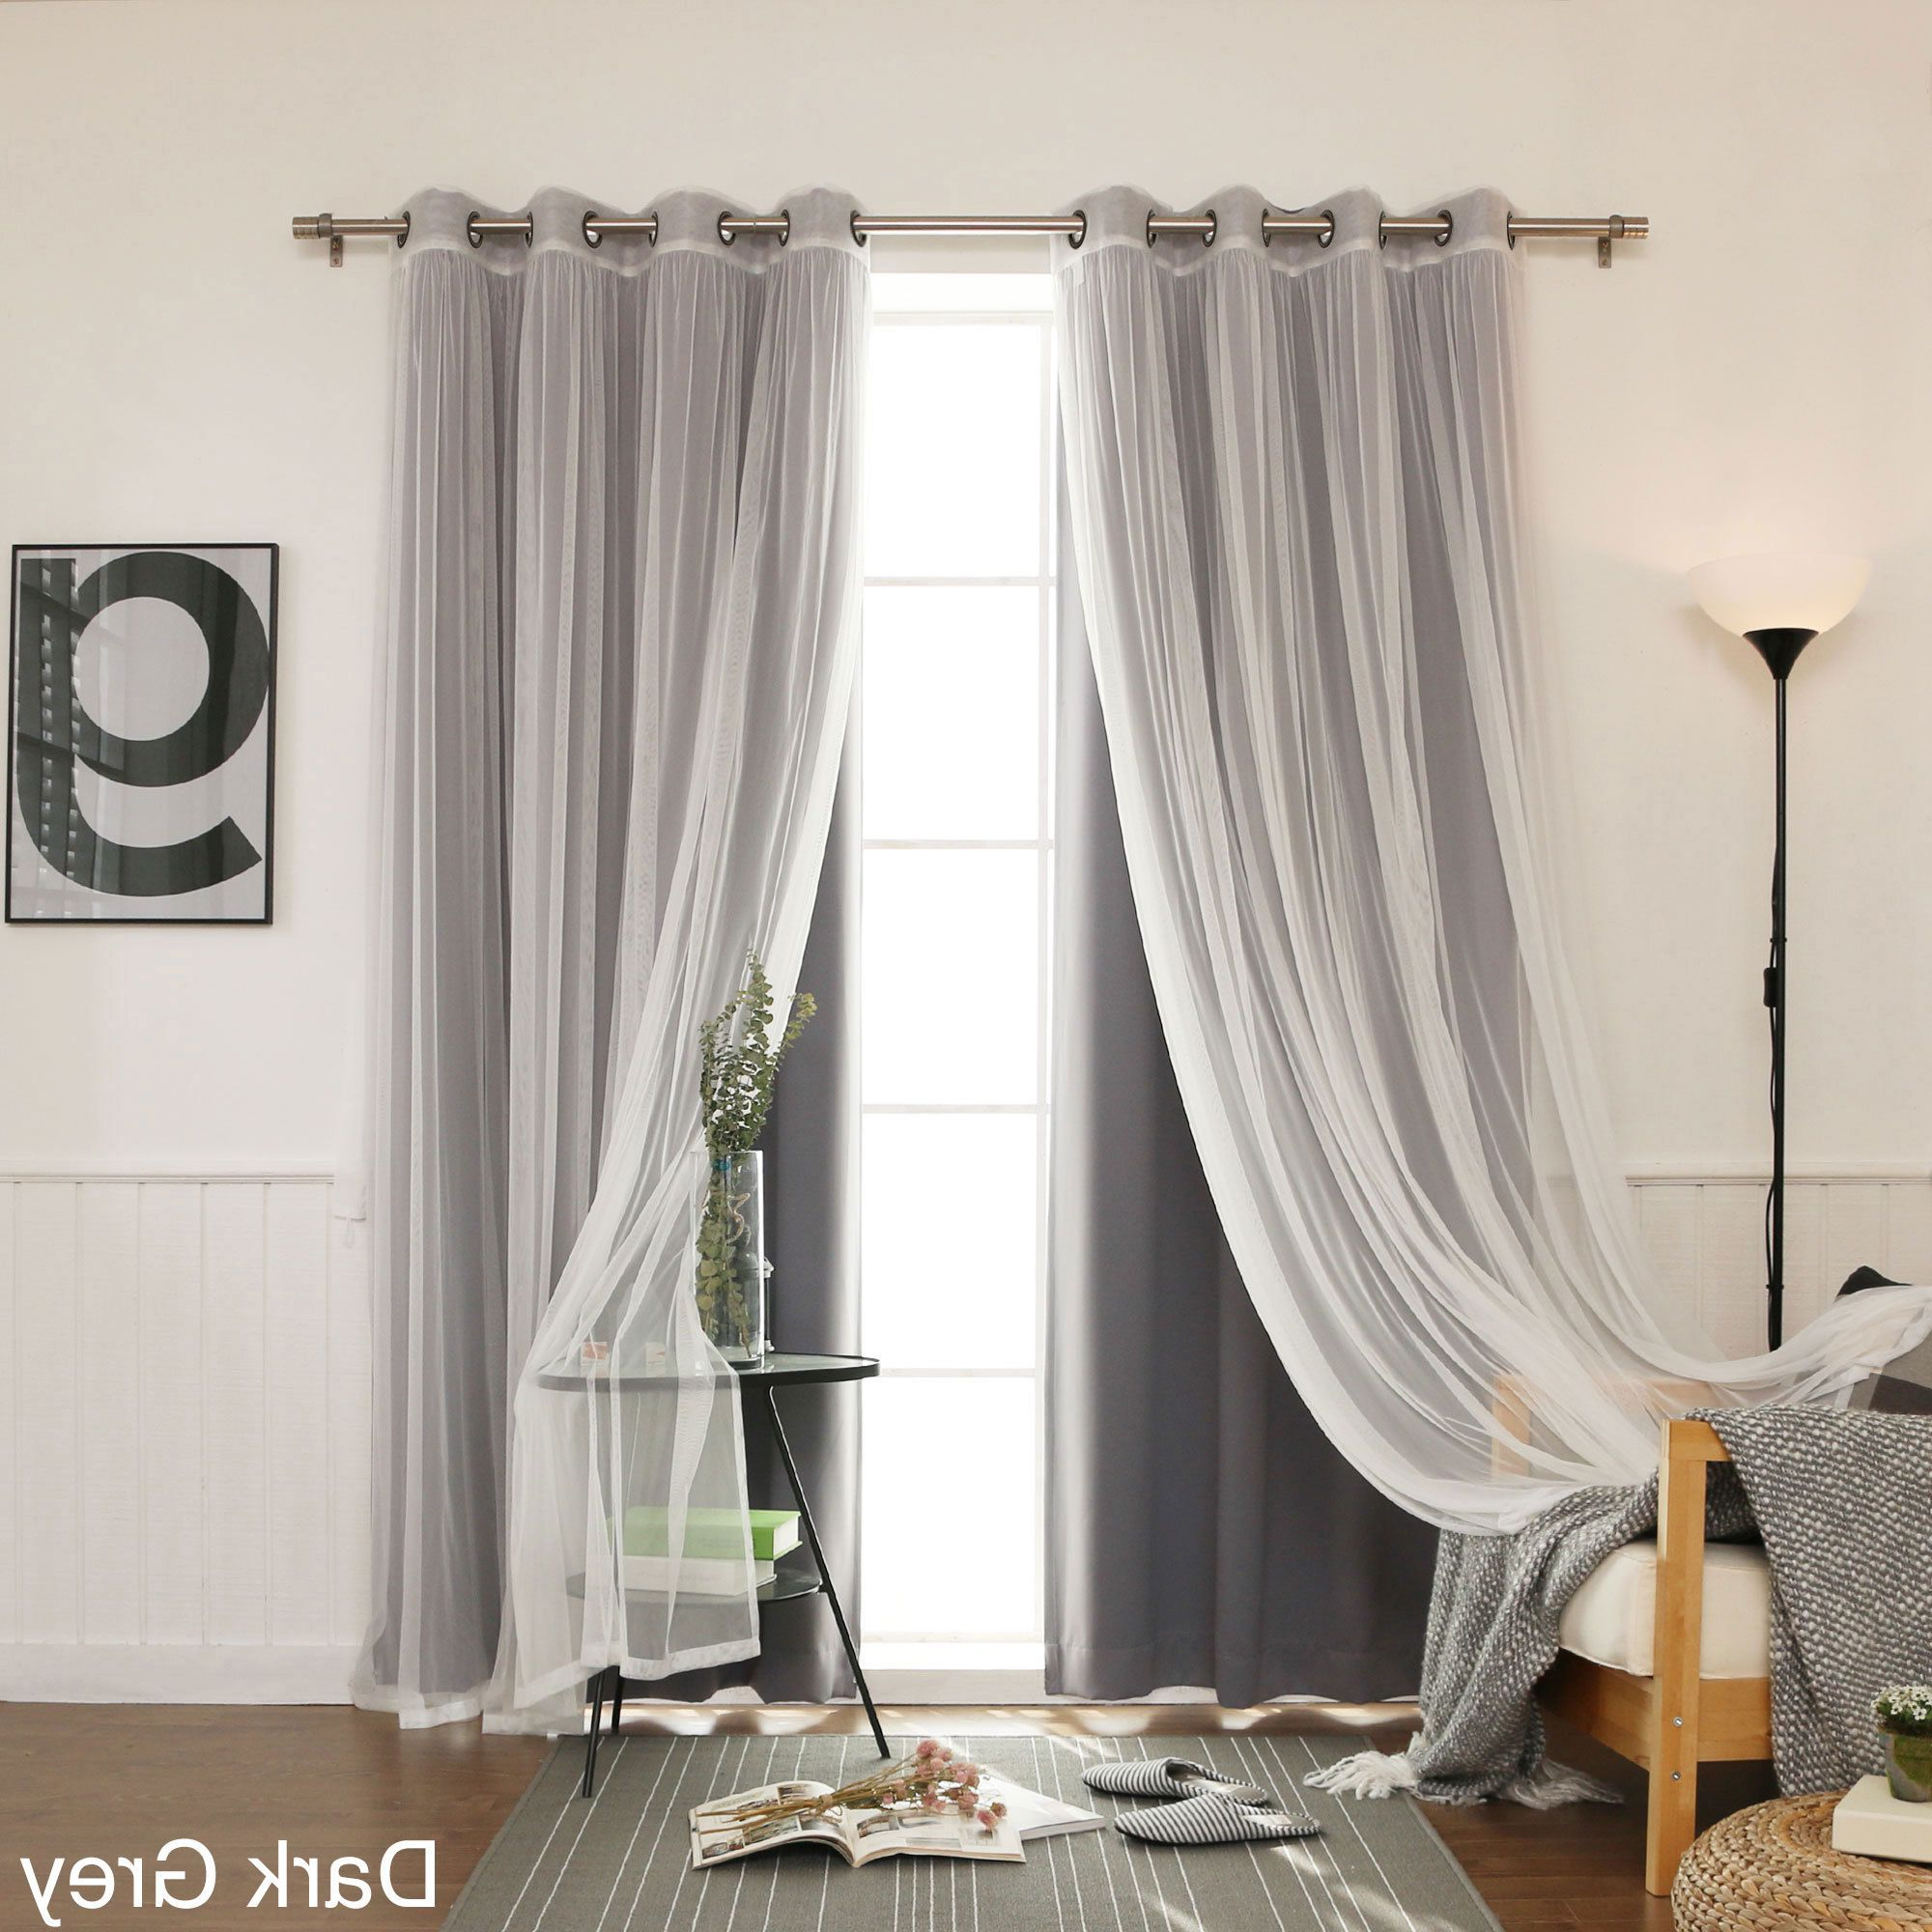 Mix & Match Blackout Tulle Lace Bronze Grommet Curtain Panel Sets With Well Known Aurora Home Mix & Match Curtains Blackout Tulle Lace Sheer (View 3 of 20)